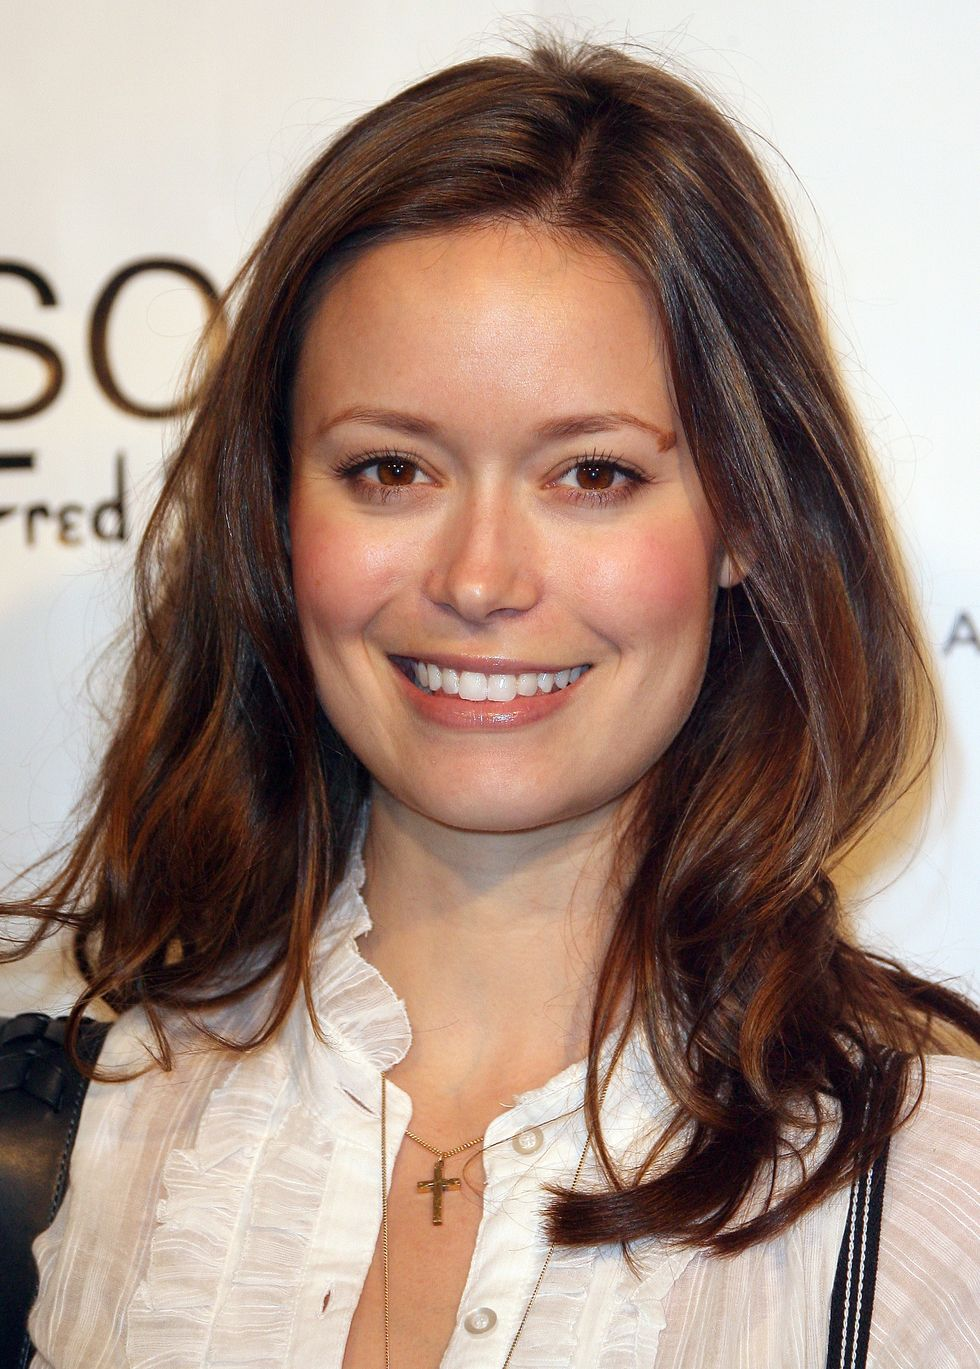 summer-glau-launch-of-safi-fragrance-by-nyakio-grieco-in-los-angeles-01